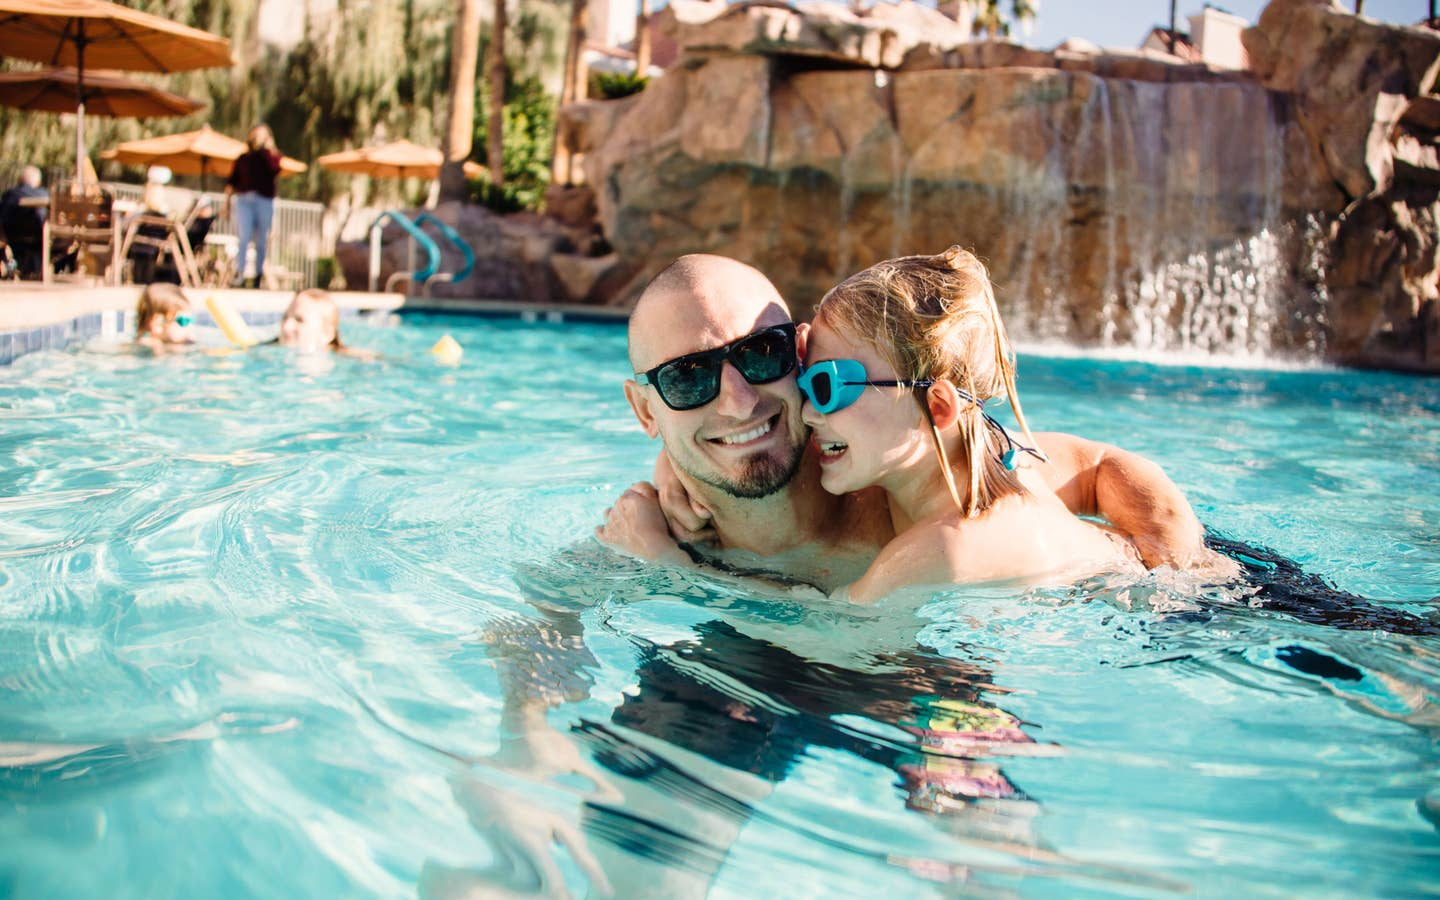 Father and daughter in Watering Hole outdoor pool at Desert Club Resort in Las Vegas, Nevada.